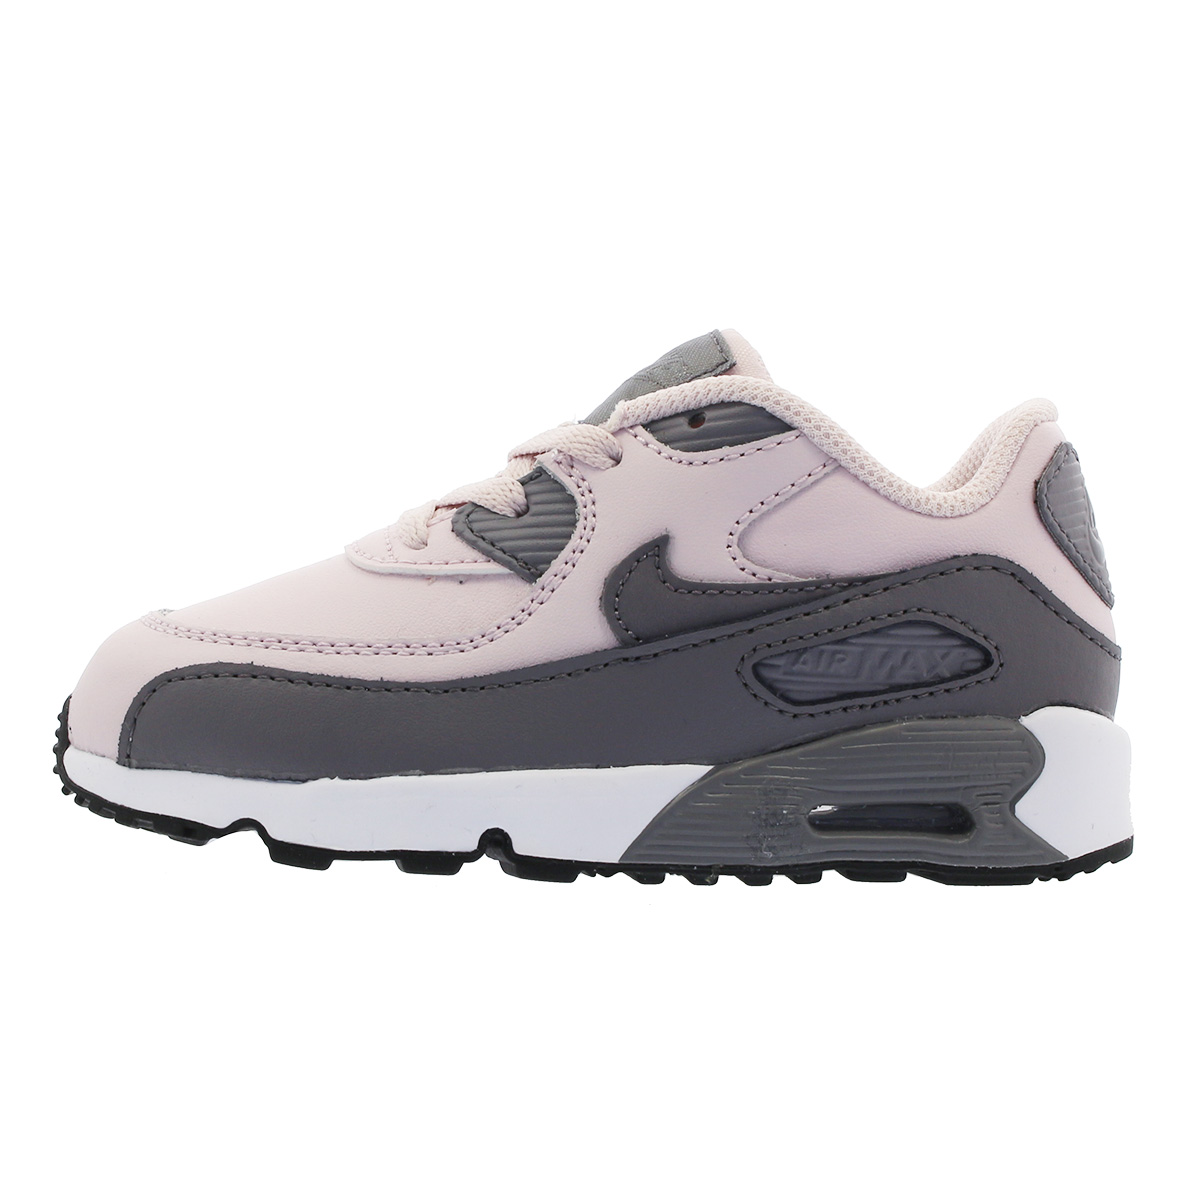 NIKE AIR MAX 90 LTR TD Kie Ney AMAX 90 leather TD BARELY ROSEGREY 833,379 601